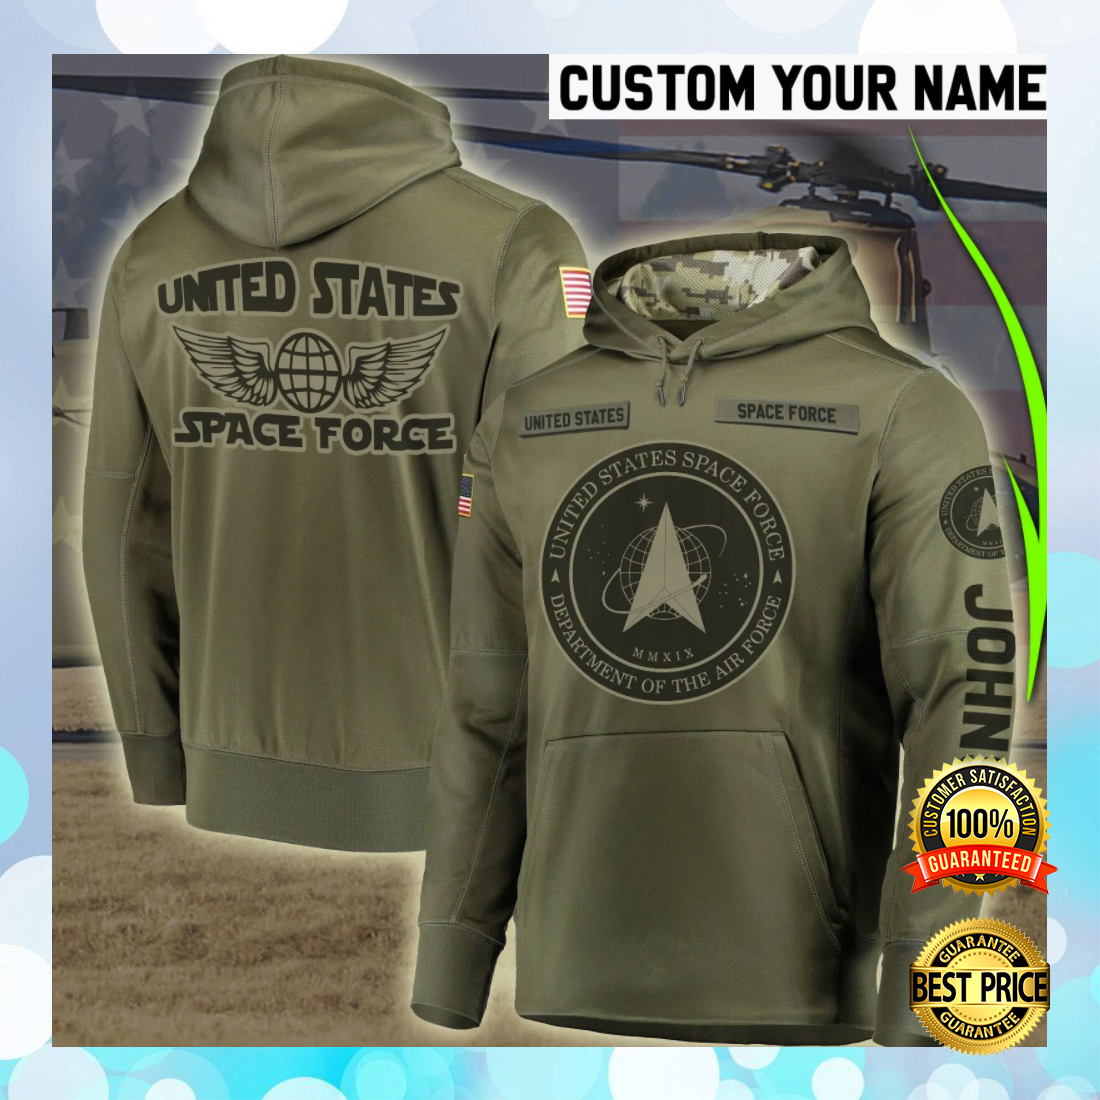 PERSONALIZED US SPACE FORCE ALL OVER PRINTED 3D HOODIE 4